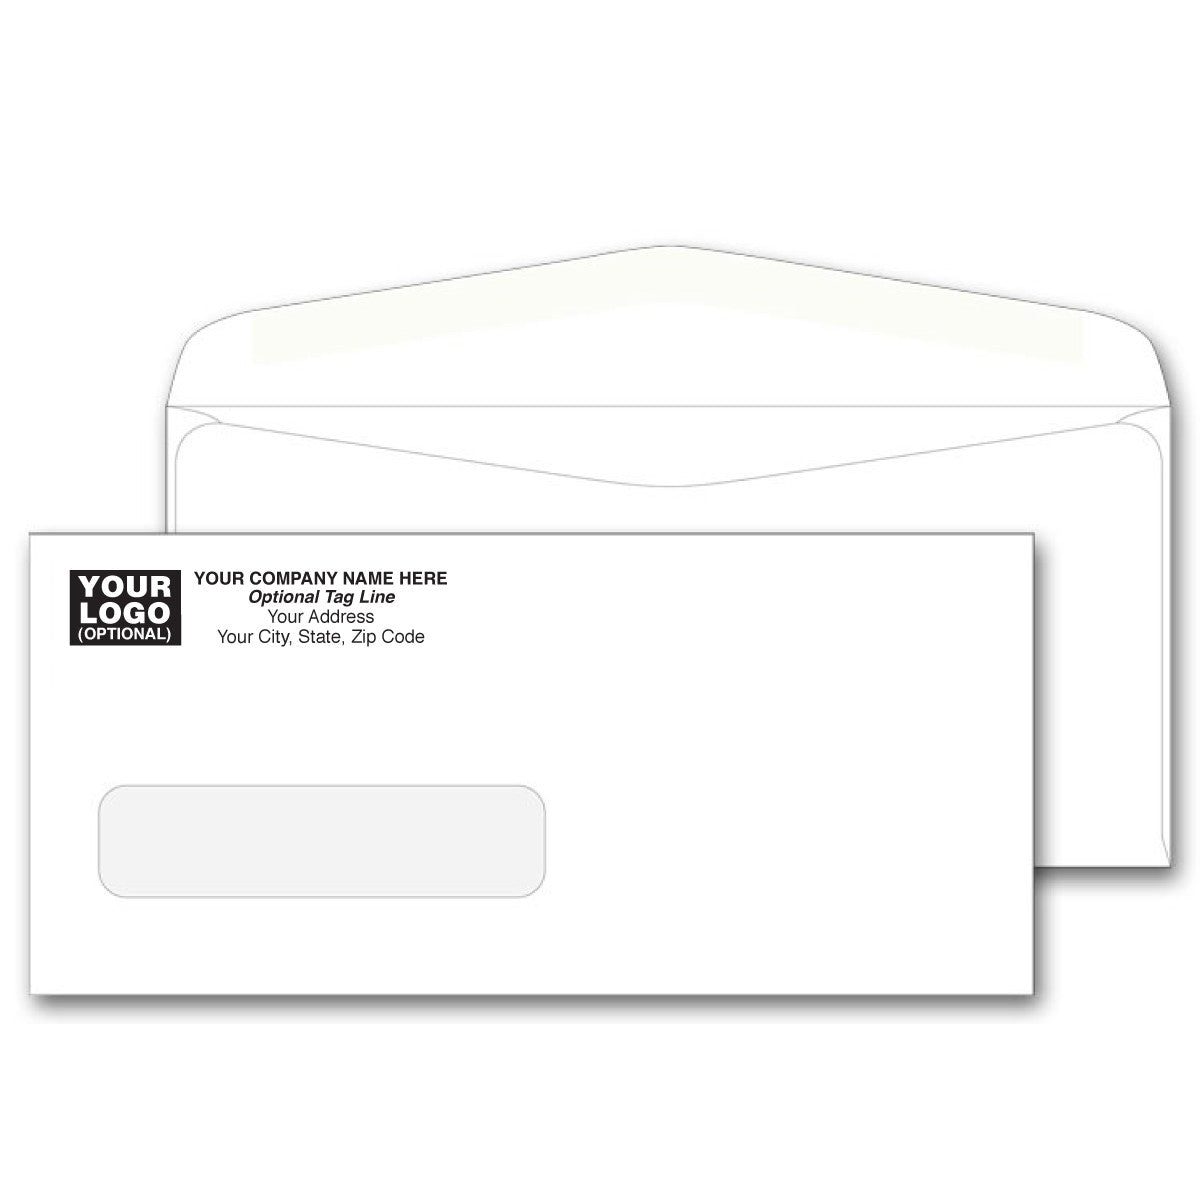 10 Window Envelopes For Pest Control Business